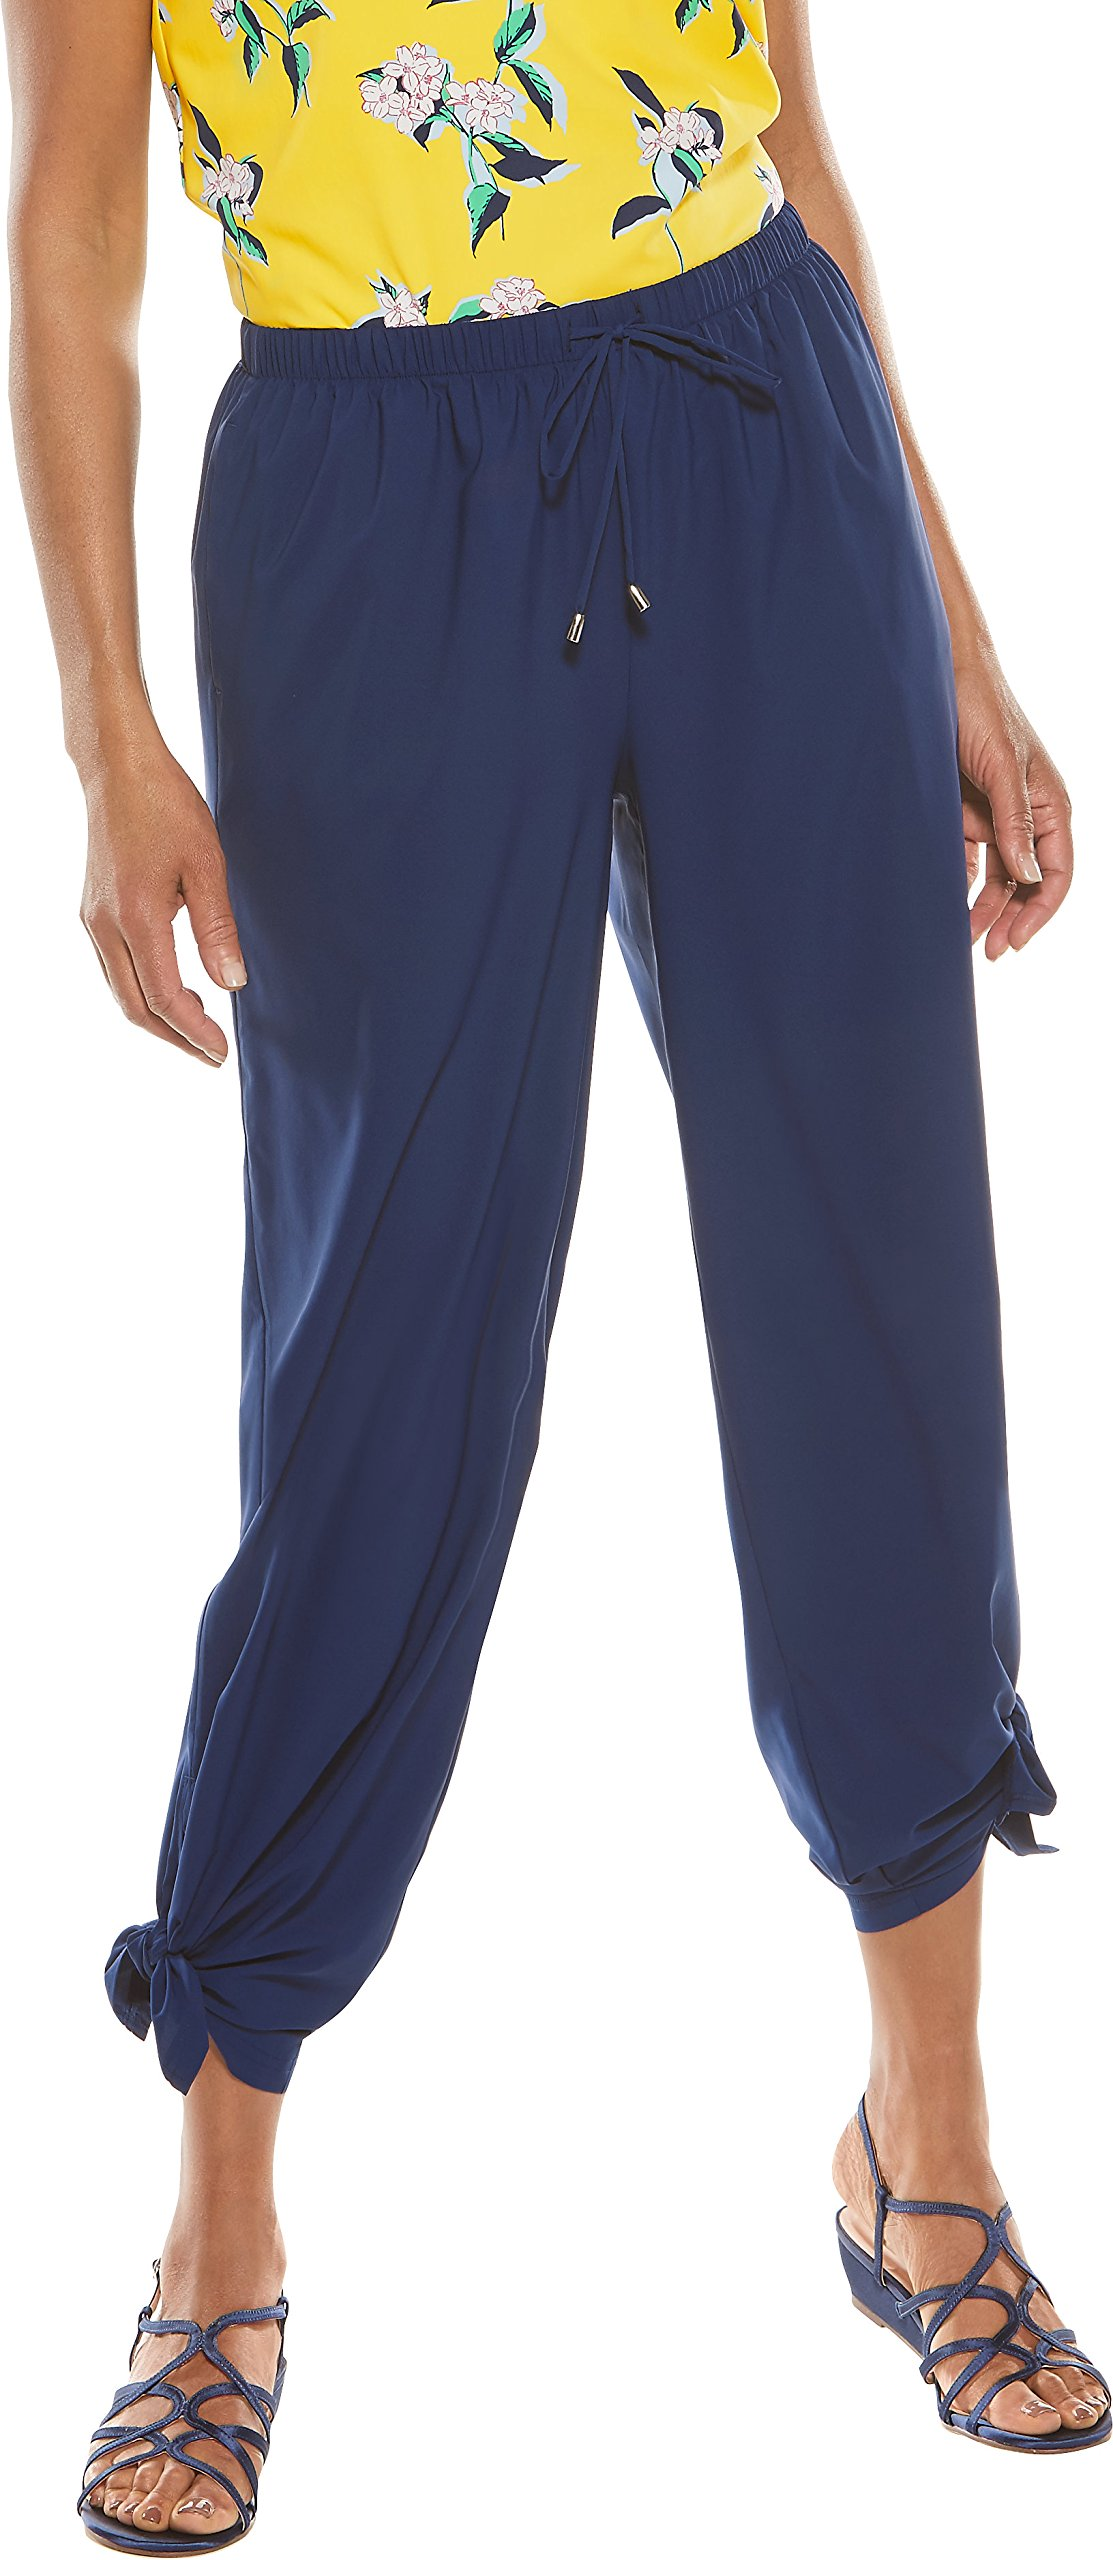 Coolibar UPF 50+ Women's Wide Leg Petra Pant - Sun Protective (XX-Large- Royal Navy) by Coolibar (Image #1)